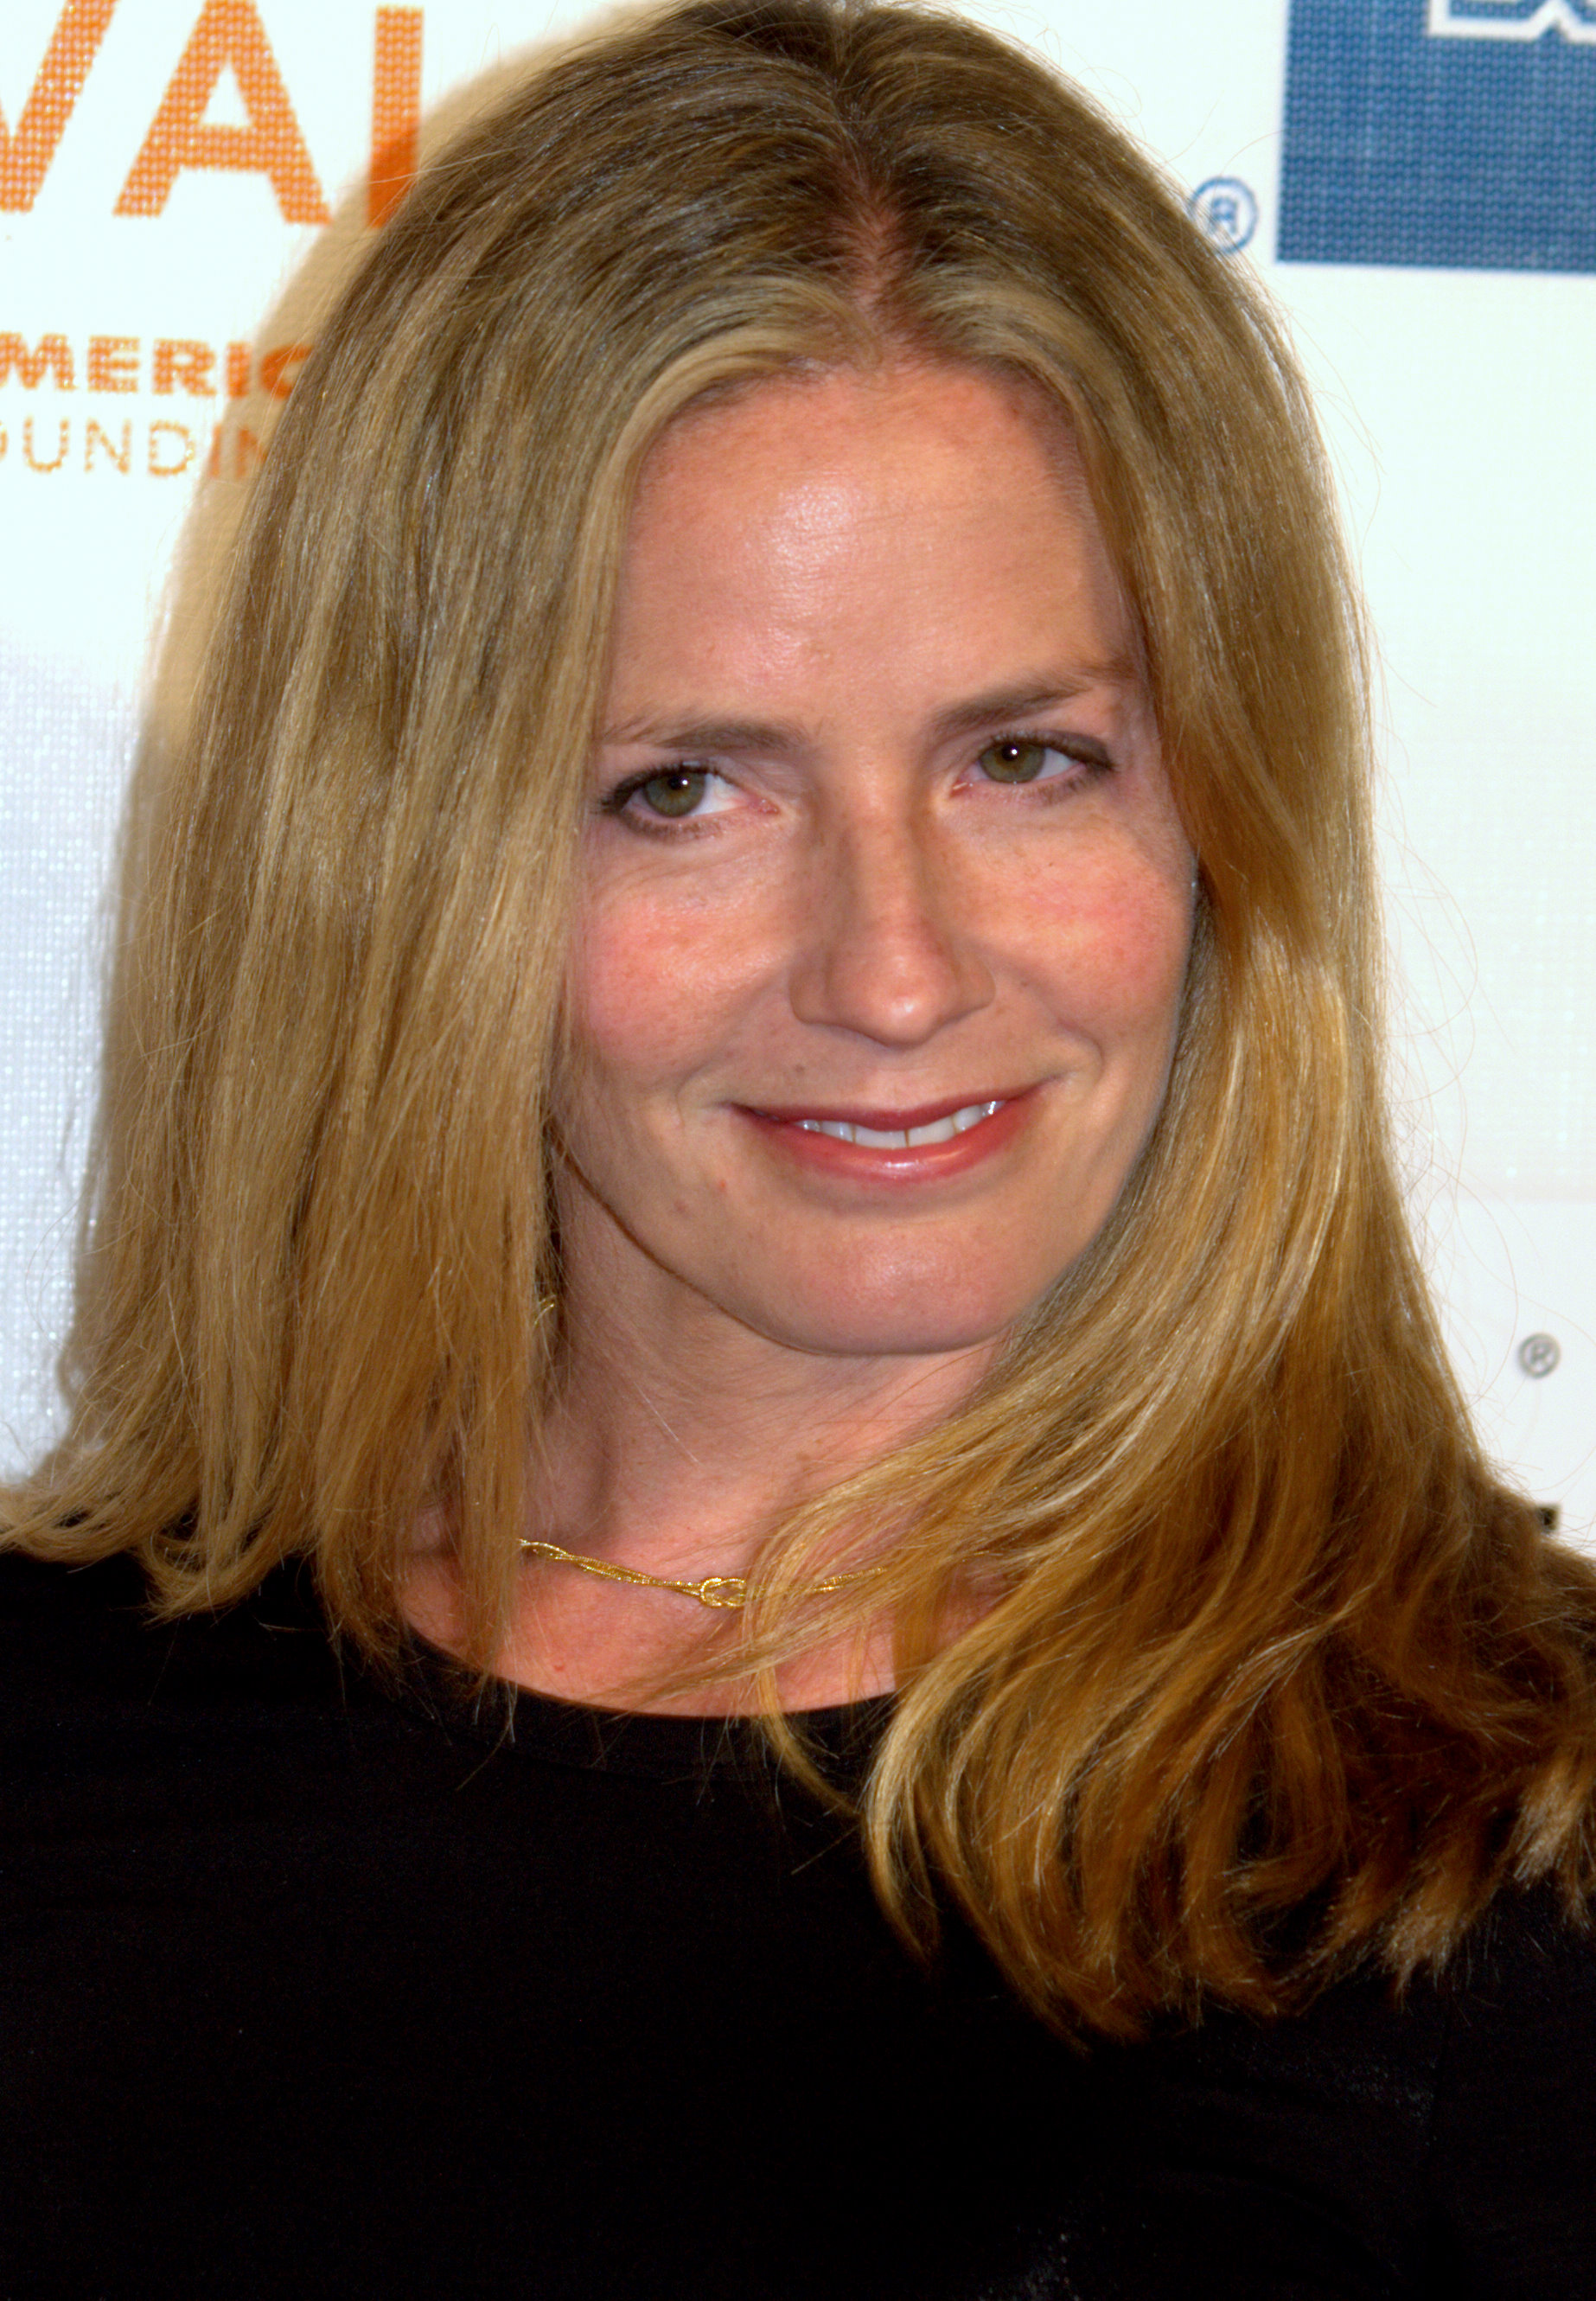 File:ELISABETH SHUE 2009 portrait.jpg - Wikipedia, the free ...